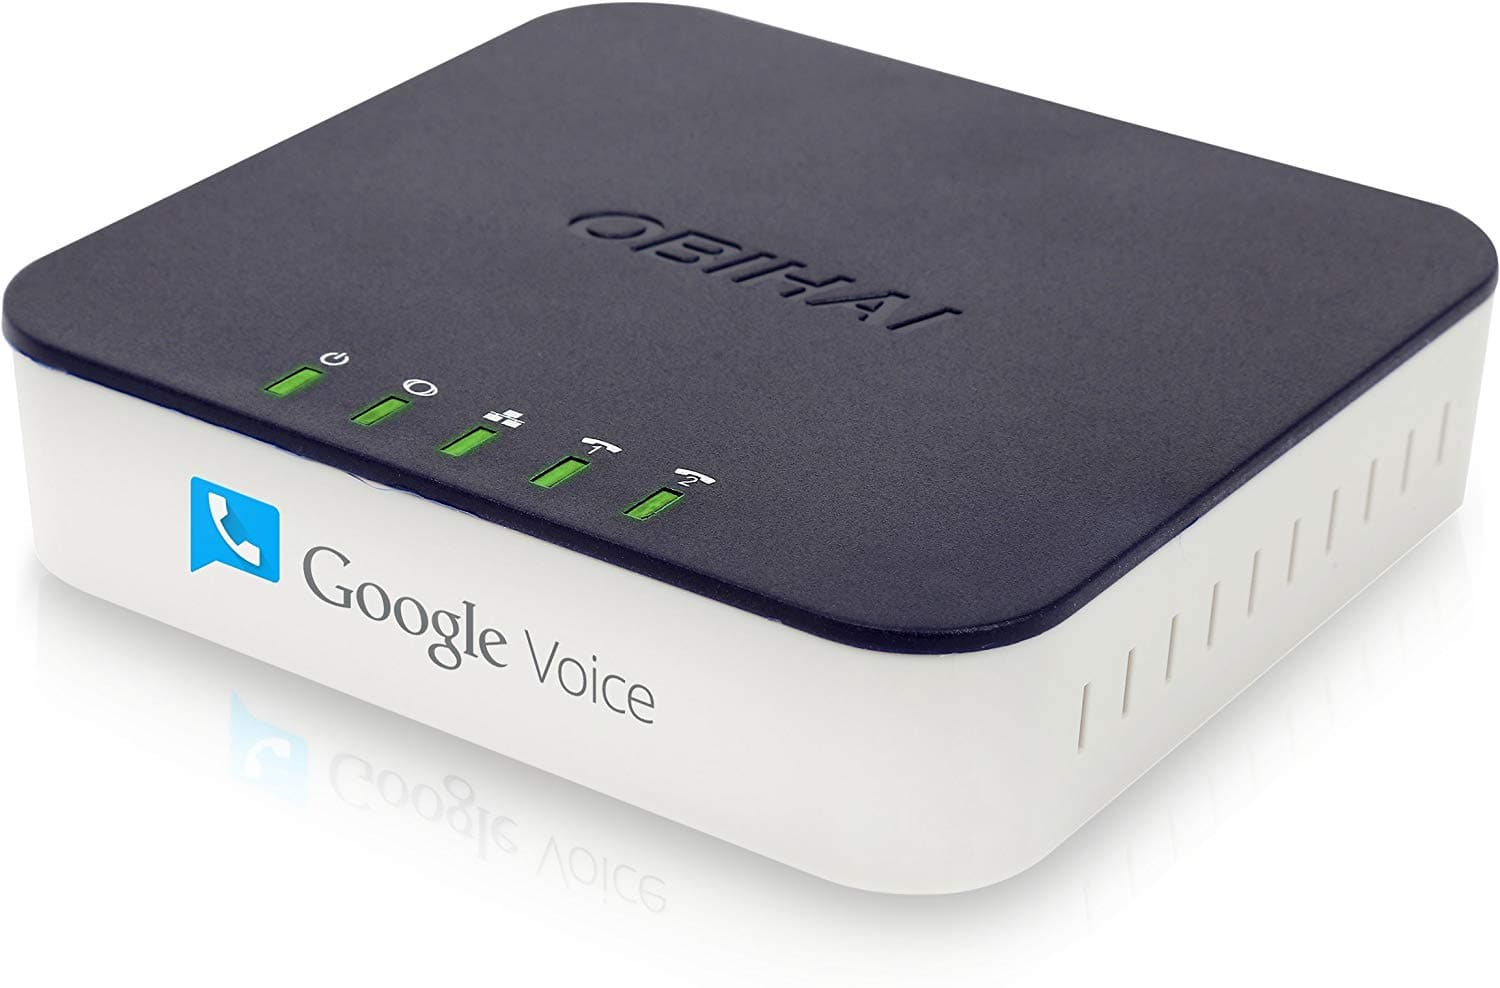 OBi202 2-Port VoIP Phone Adapter with Google Voice and Fax Support for Home and SOHO Phone Service $52